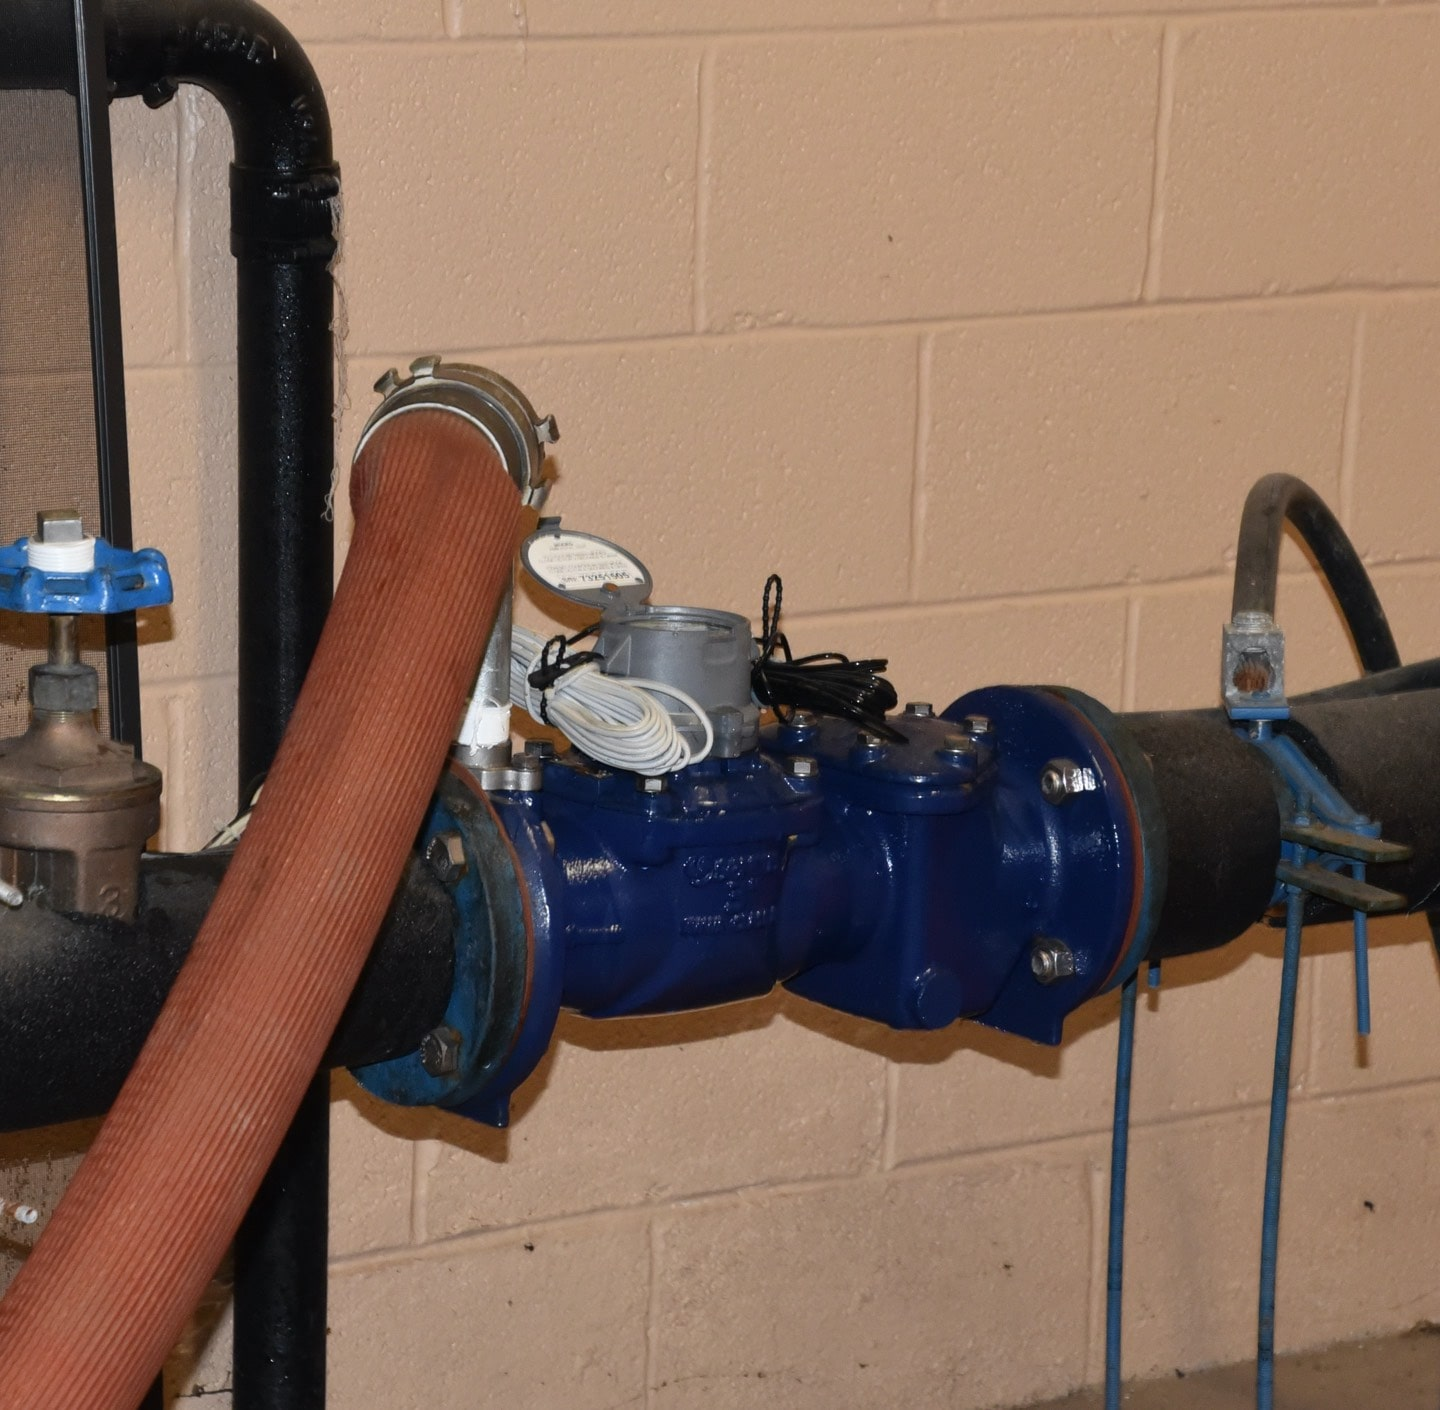 ME Simpson has the gauges, hoses and technology to provide efficient water management for you business.